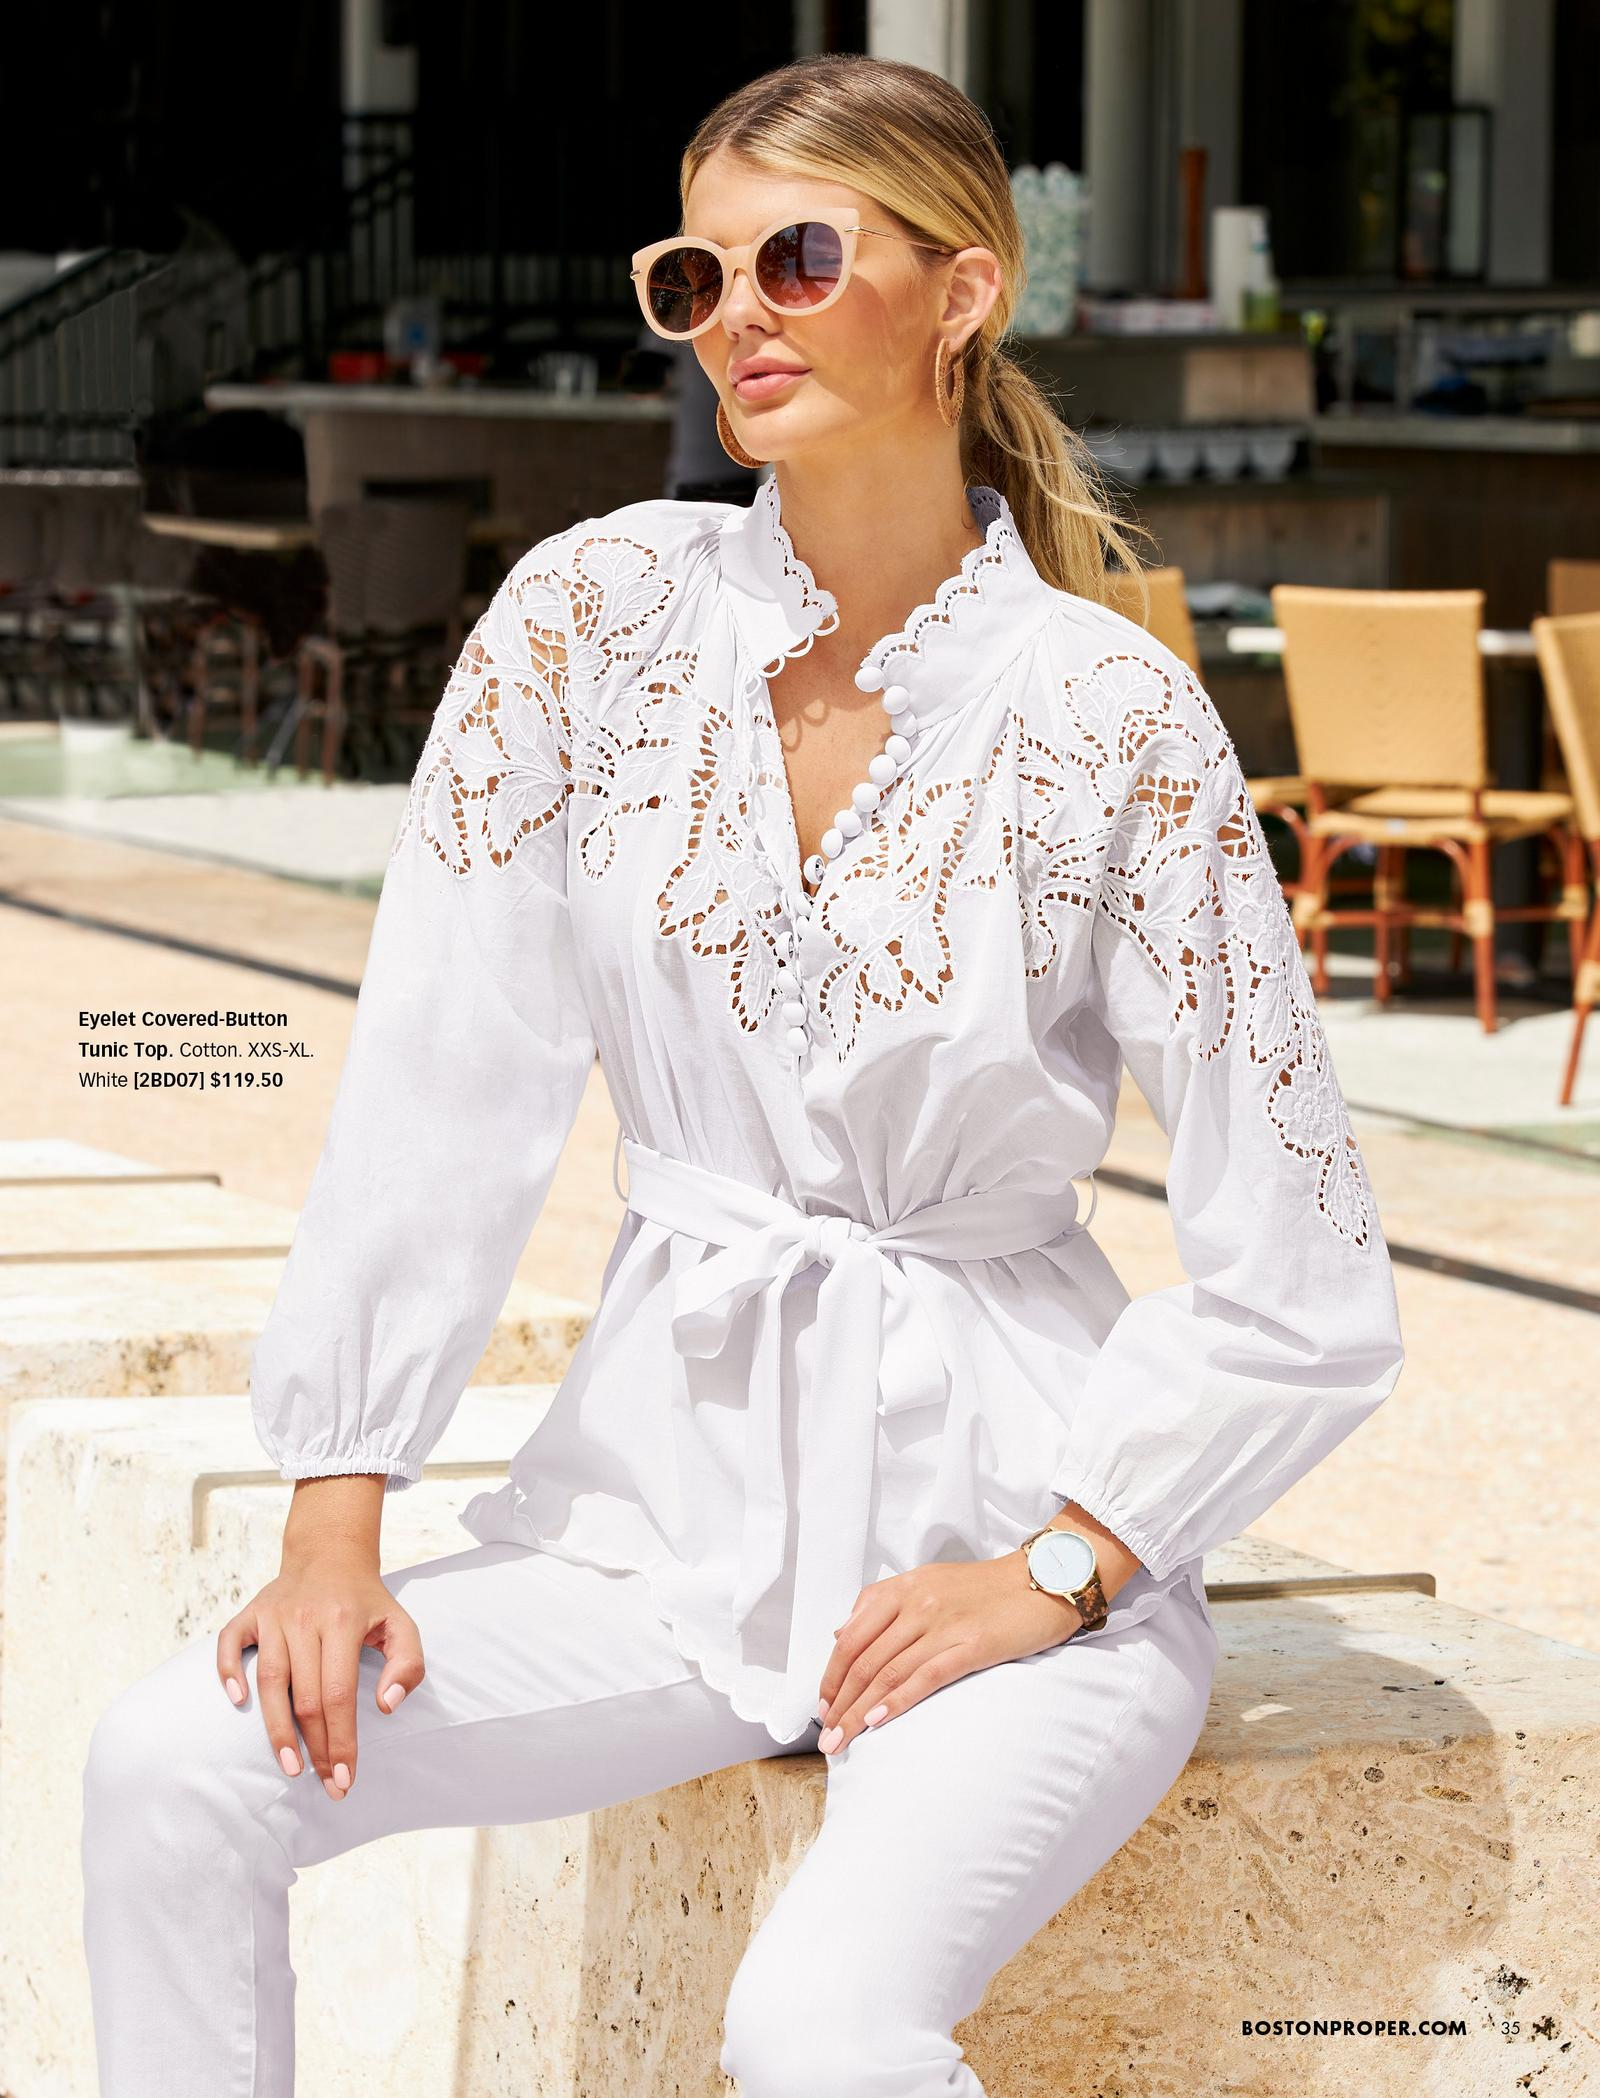 model wearing a white eyelet covered-button long-sleeve tunic top that ties at the waist, white jeans, and sunglasses.